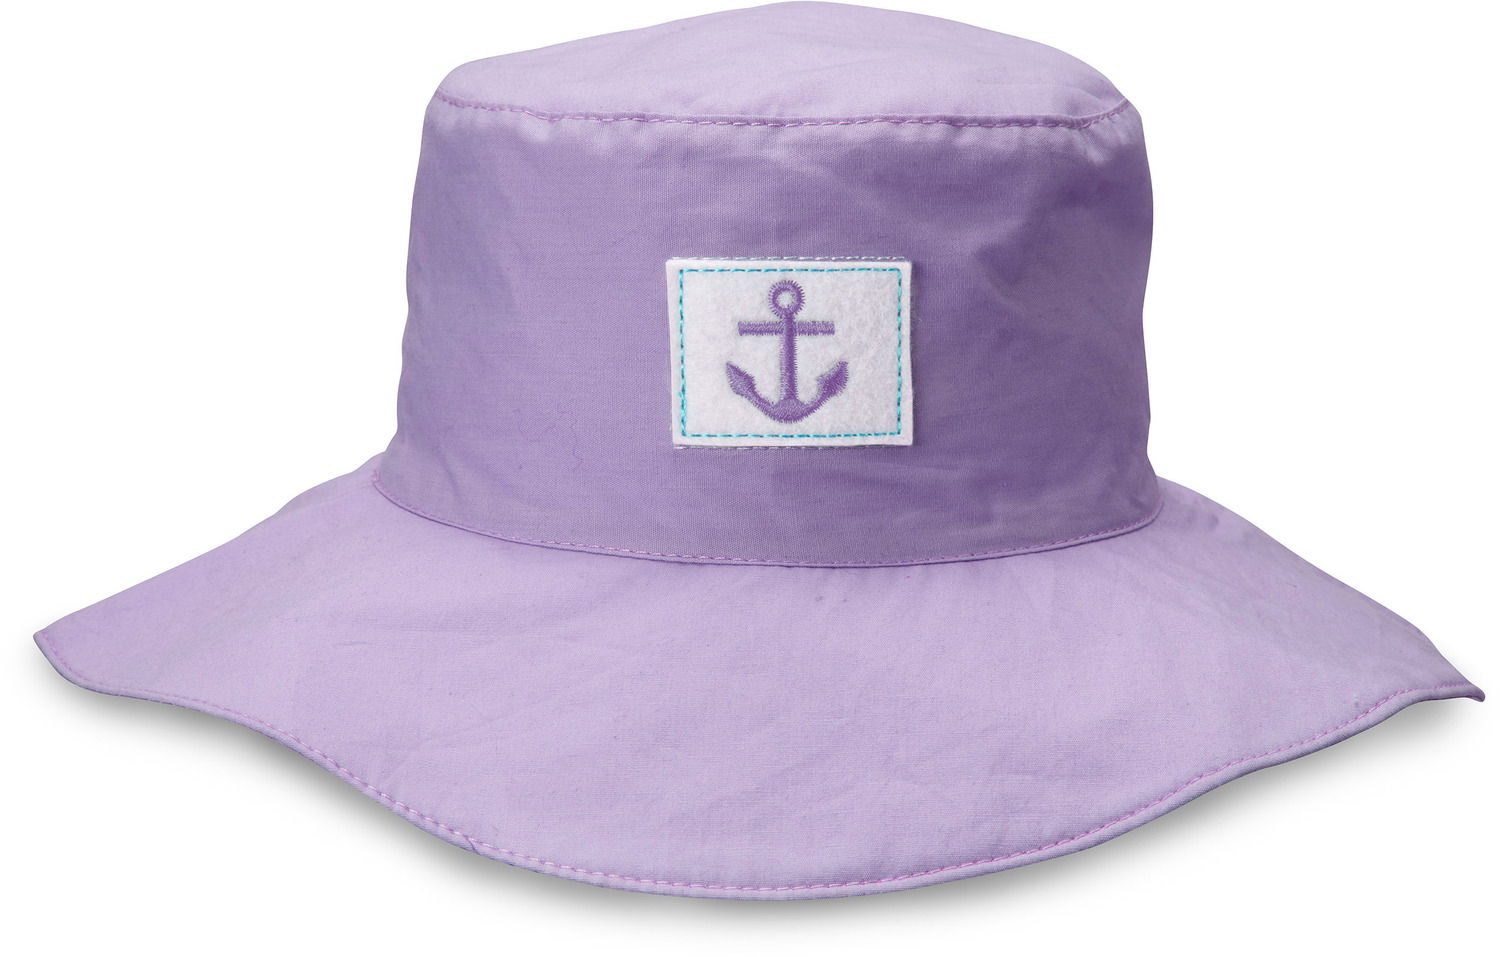 Boat Baby by We Baby - Boat Baby - 6-12 Month Girl Hat